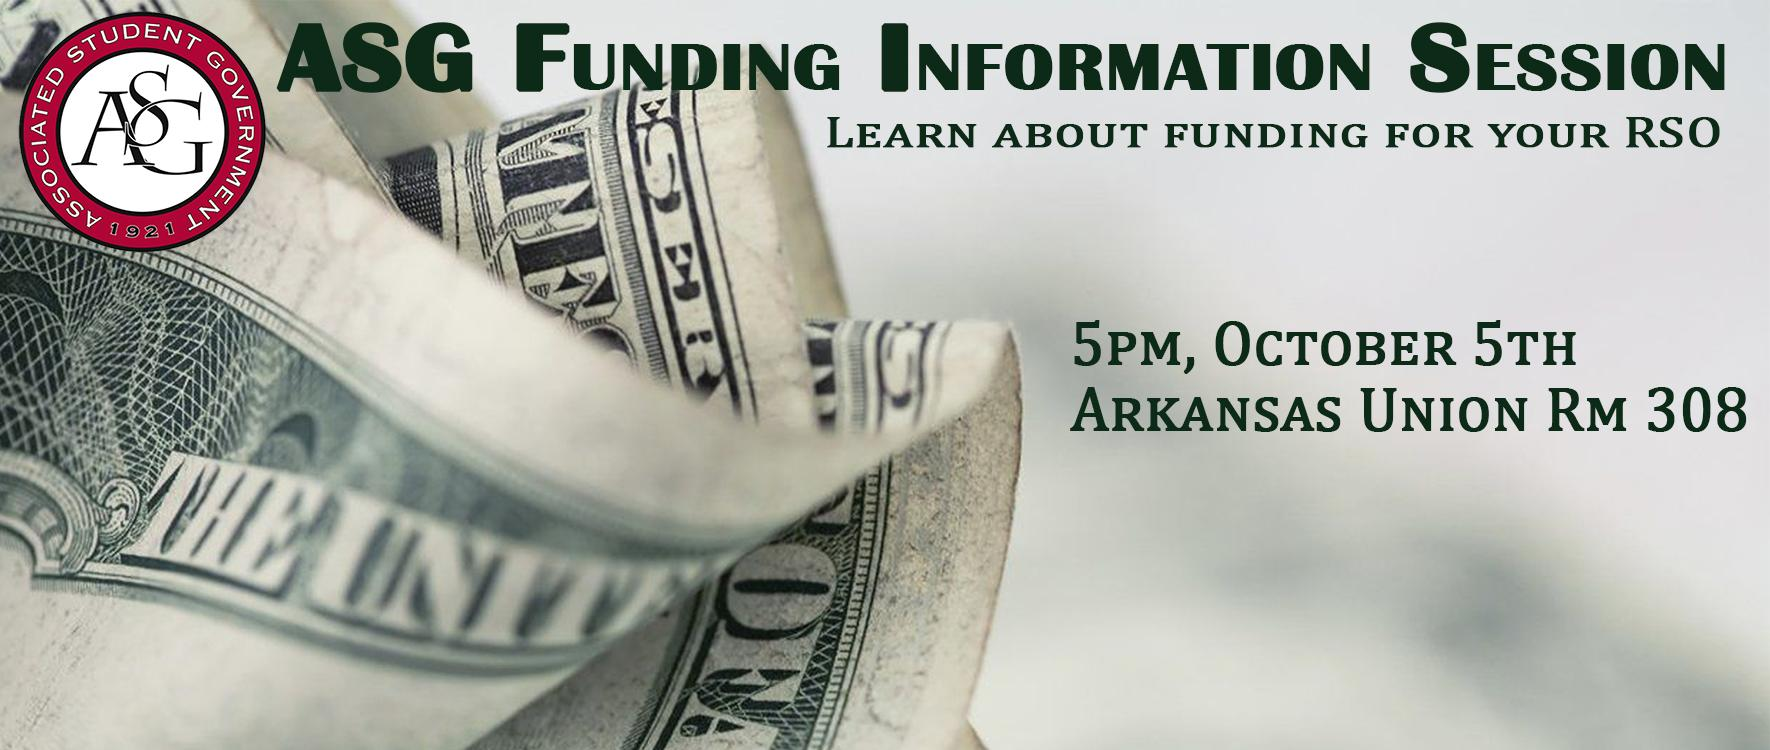 ASG Funding Information Session